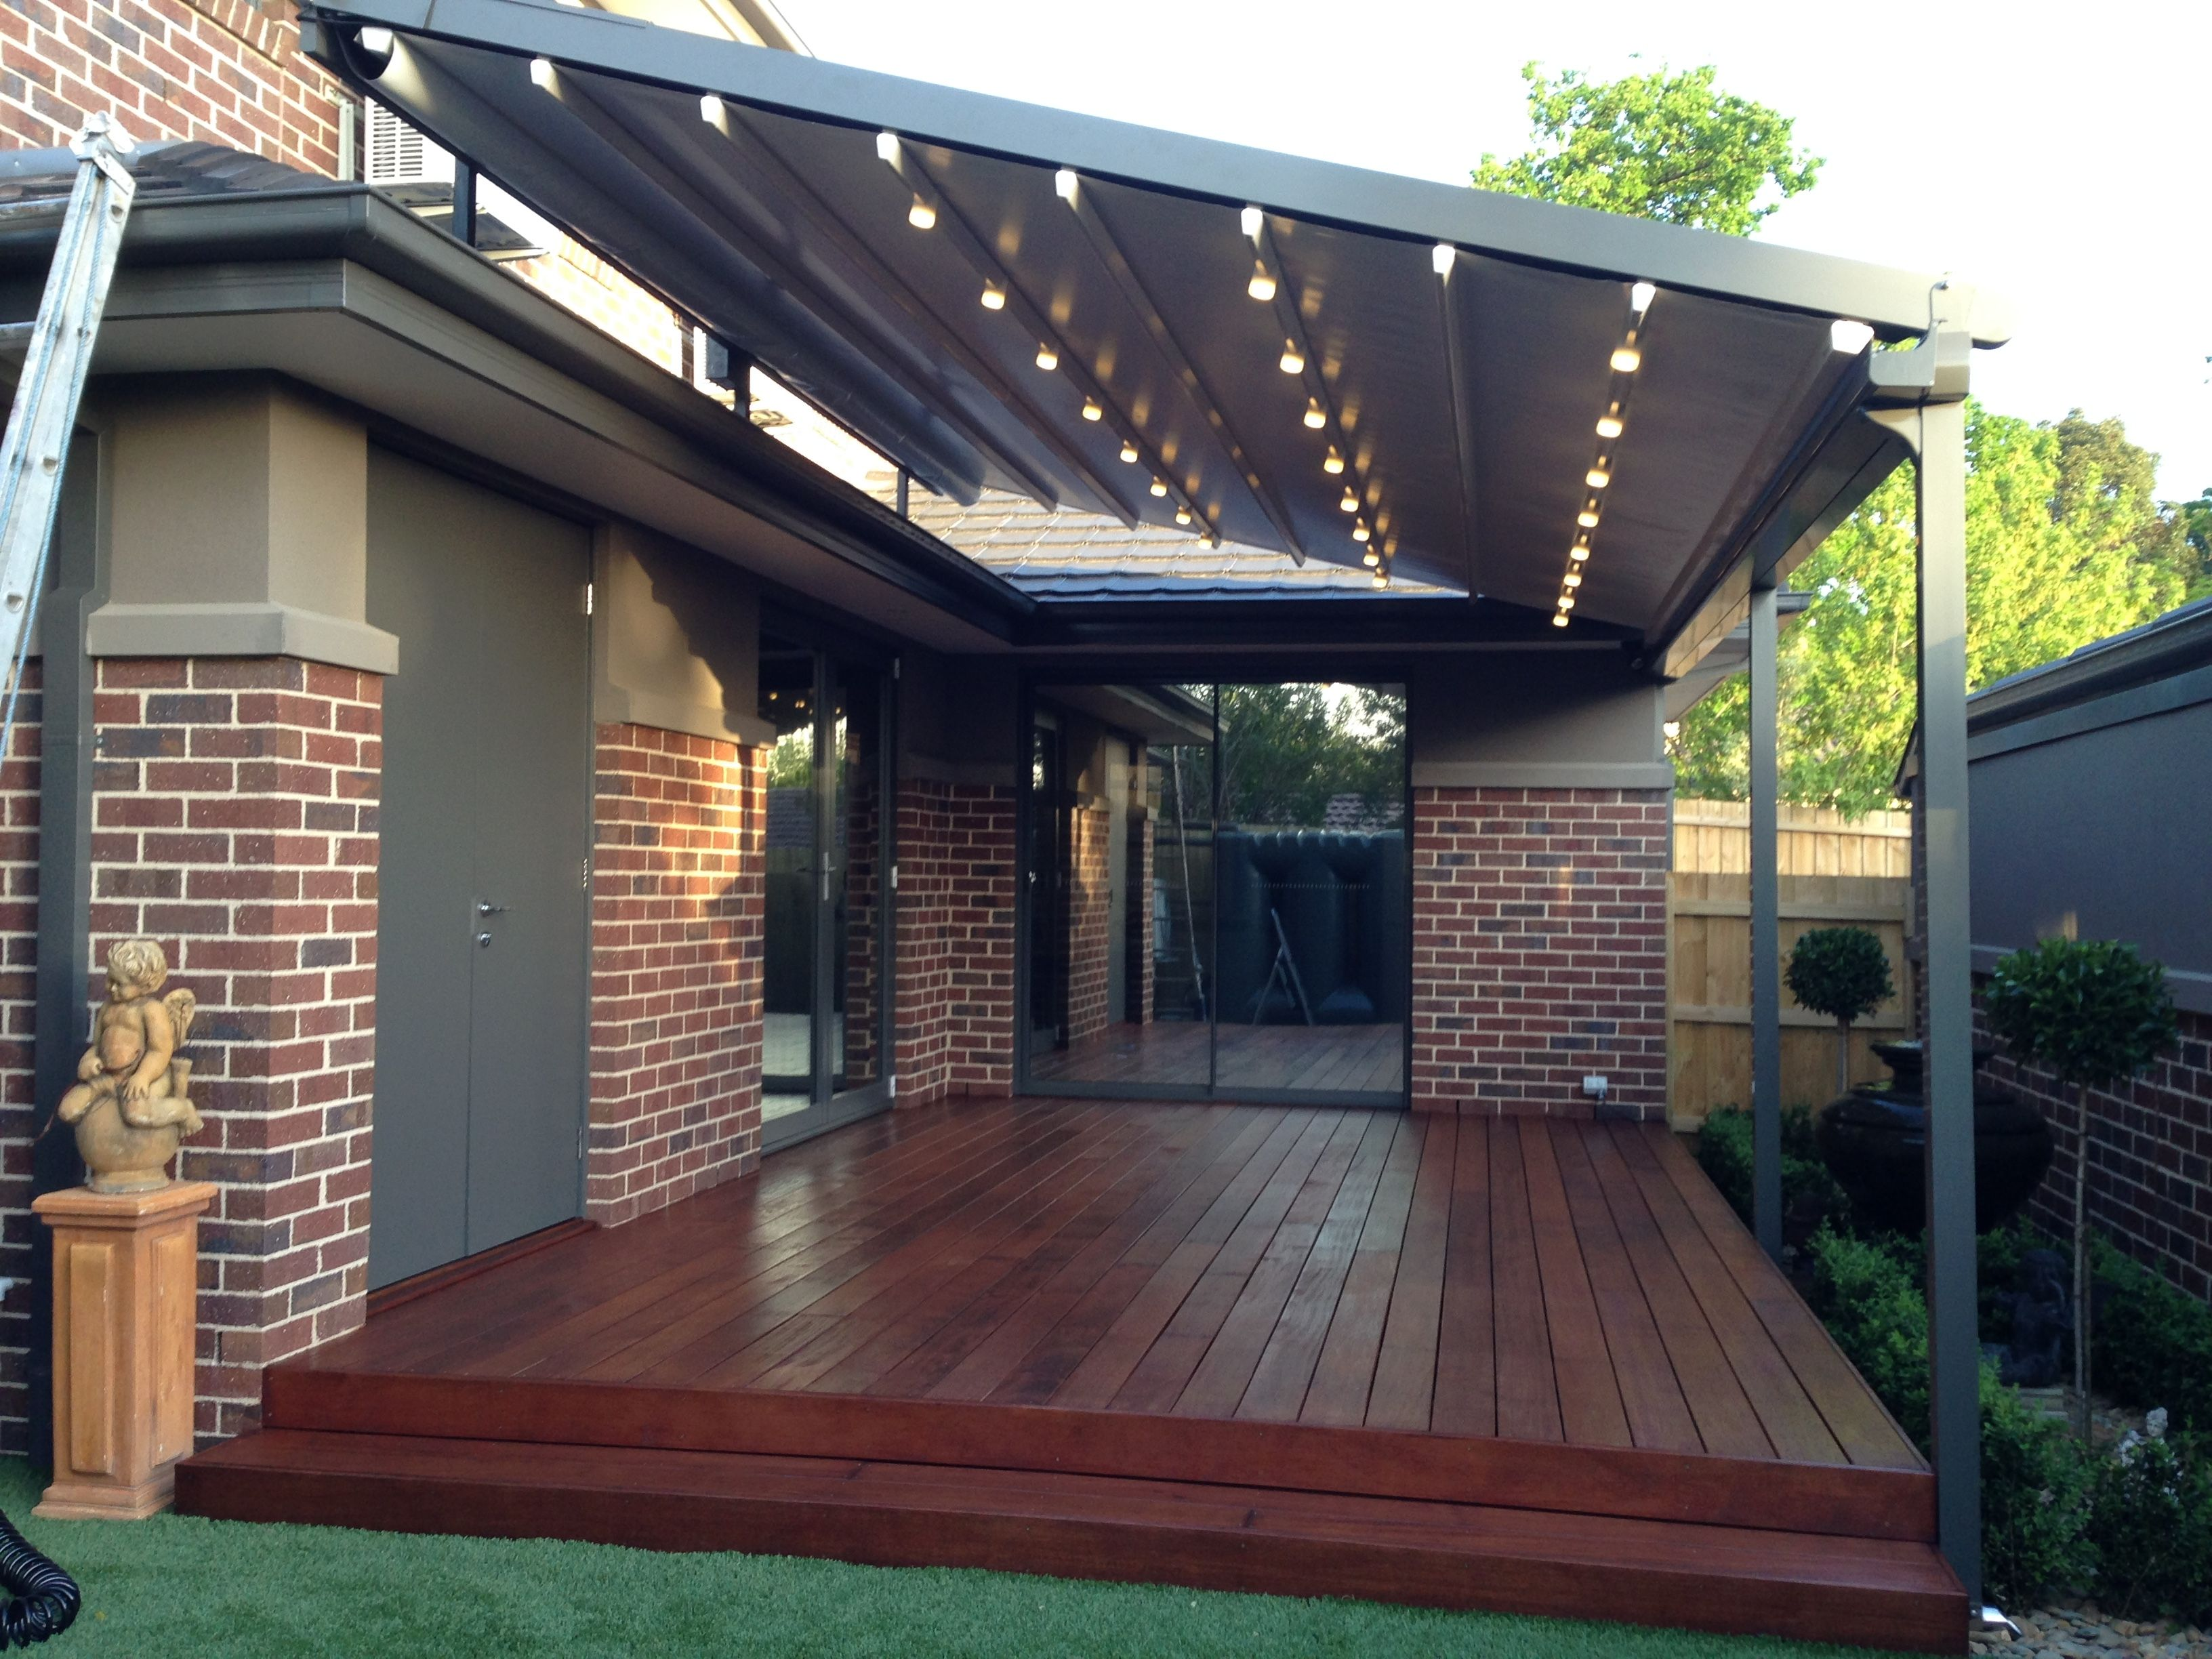 awnings patio pergola by ke nj the richard waterproof a durasol retractable awning kedurasolawnings project gennius